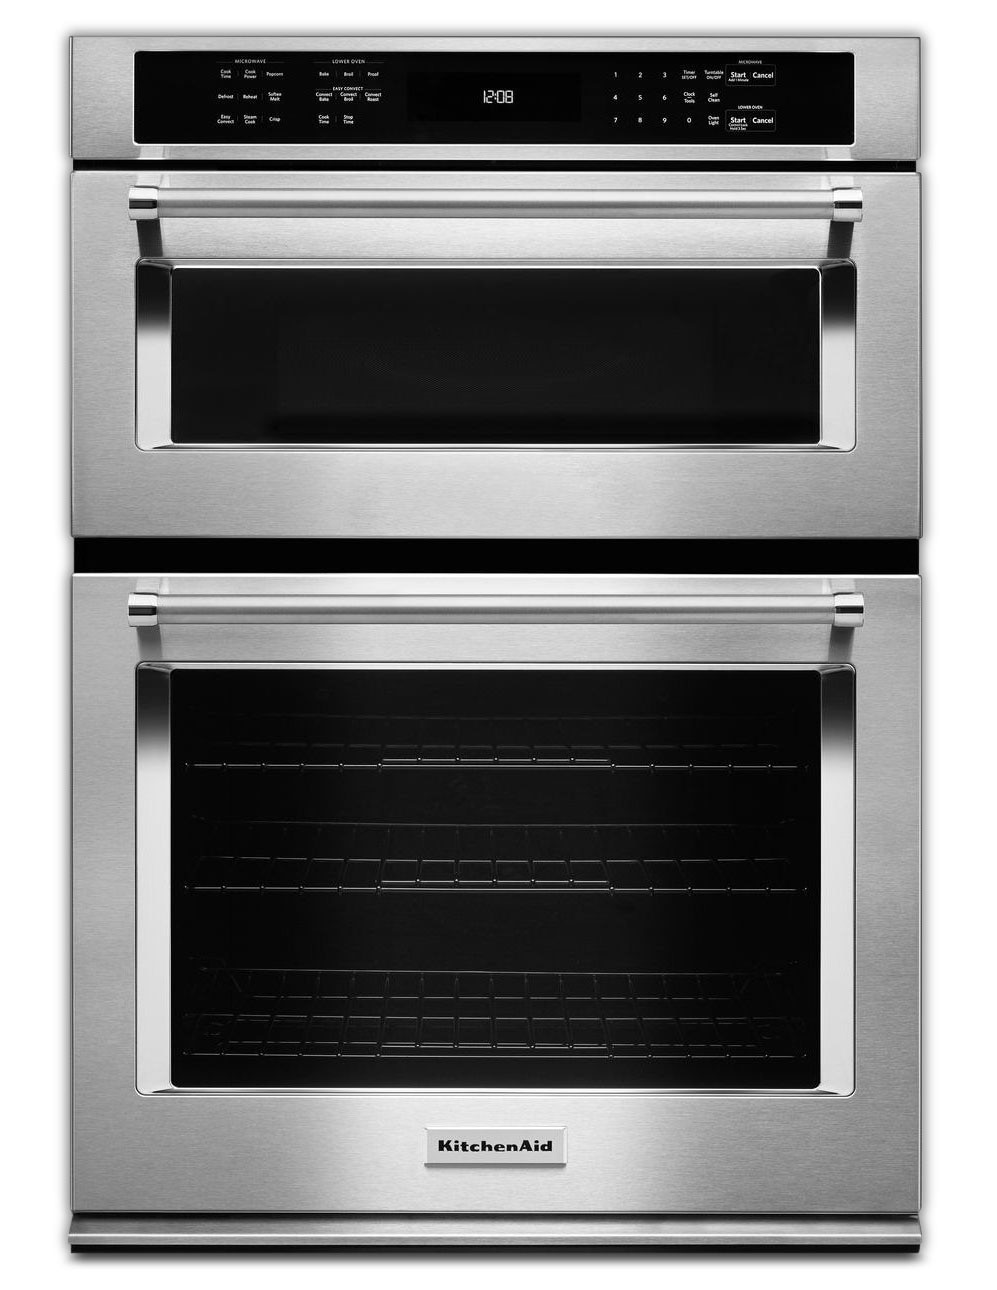 Cooking Products - KitchenAid Wall Oven with Microwave KOCE500ESS